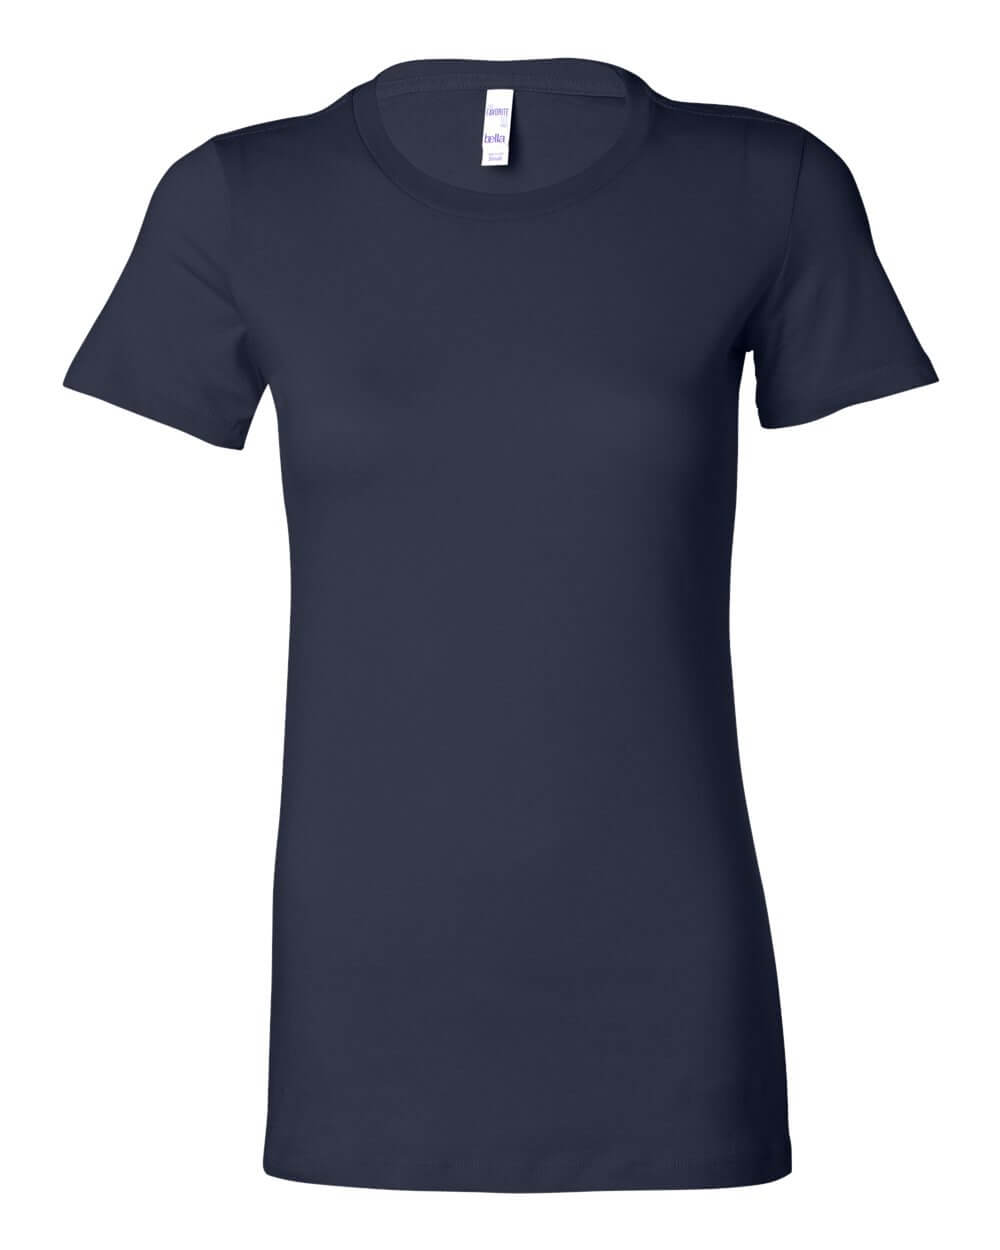 Bella__Canvas_6004_Navy Blue Custom T Shirts